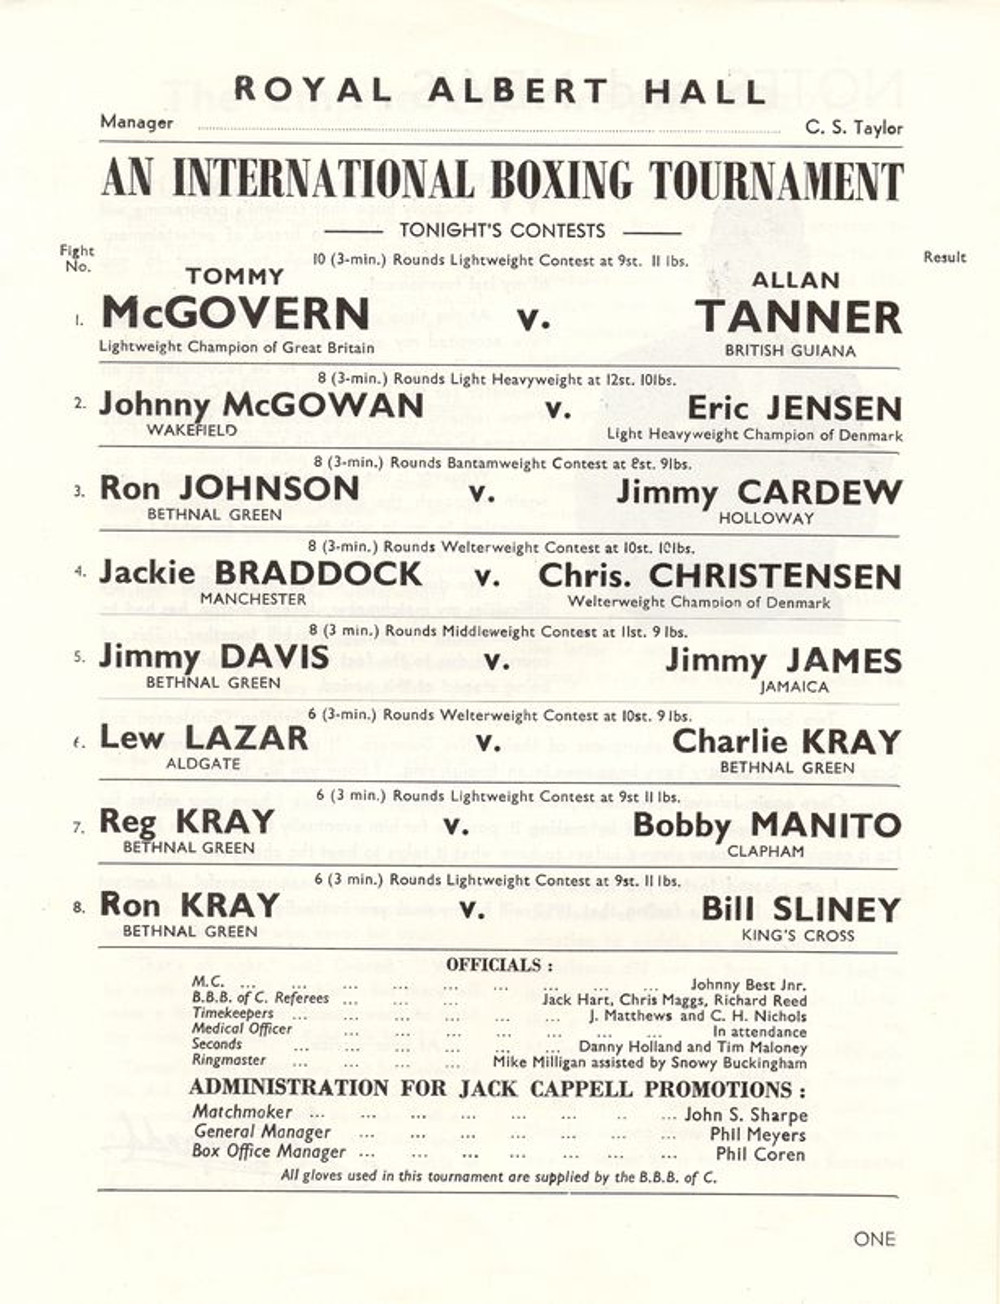 Boxing poster featuring the Kray brothers